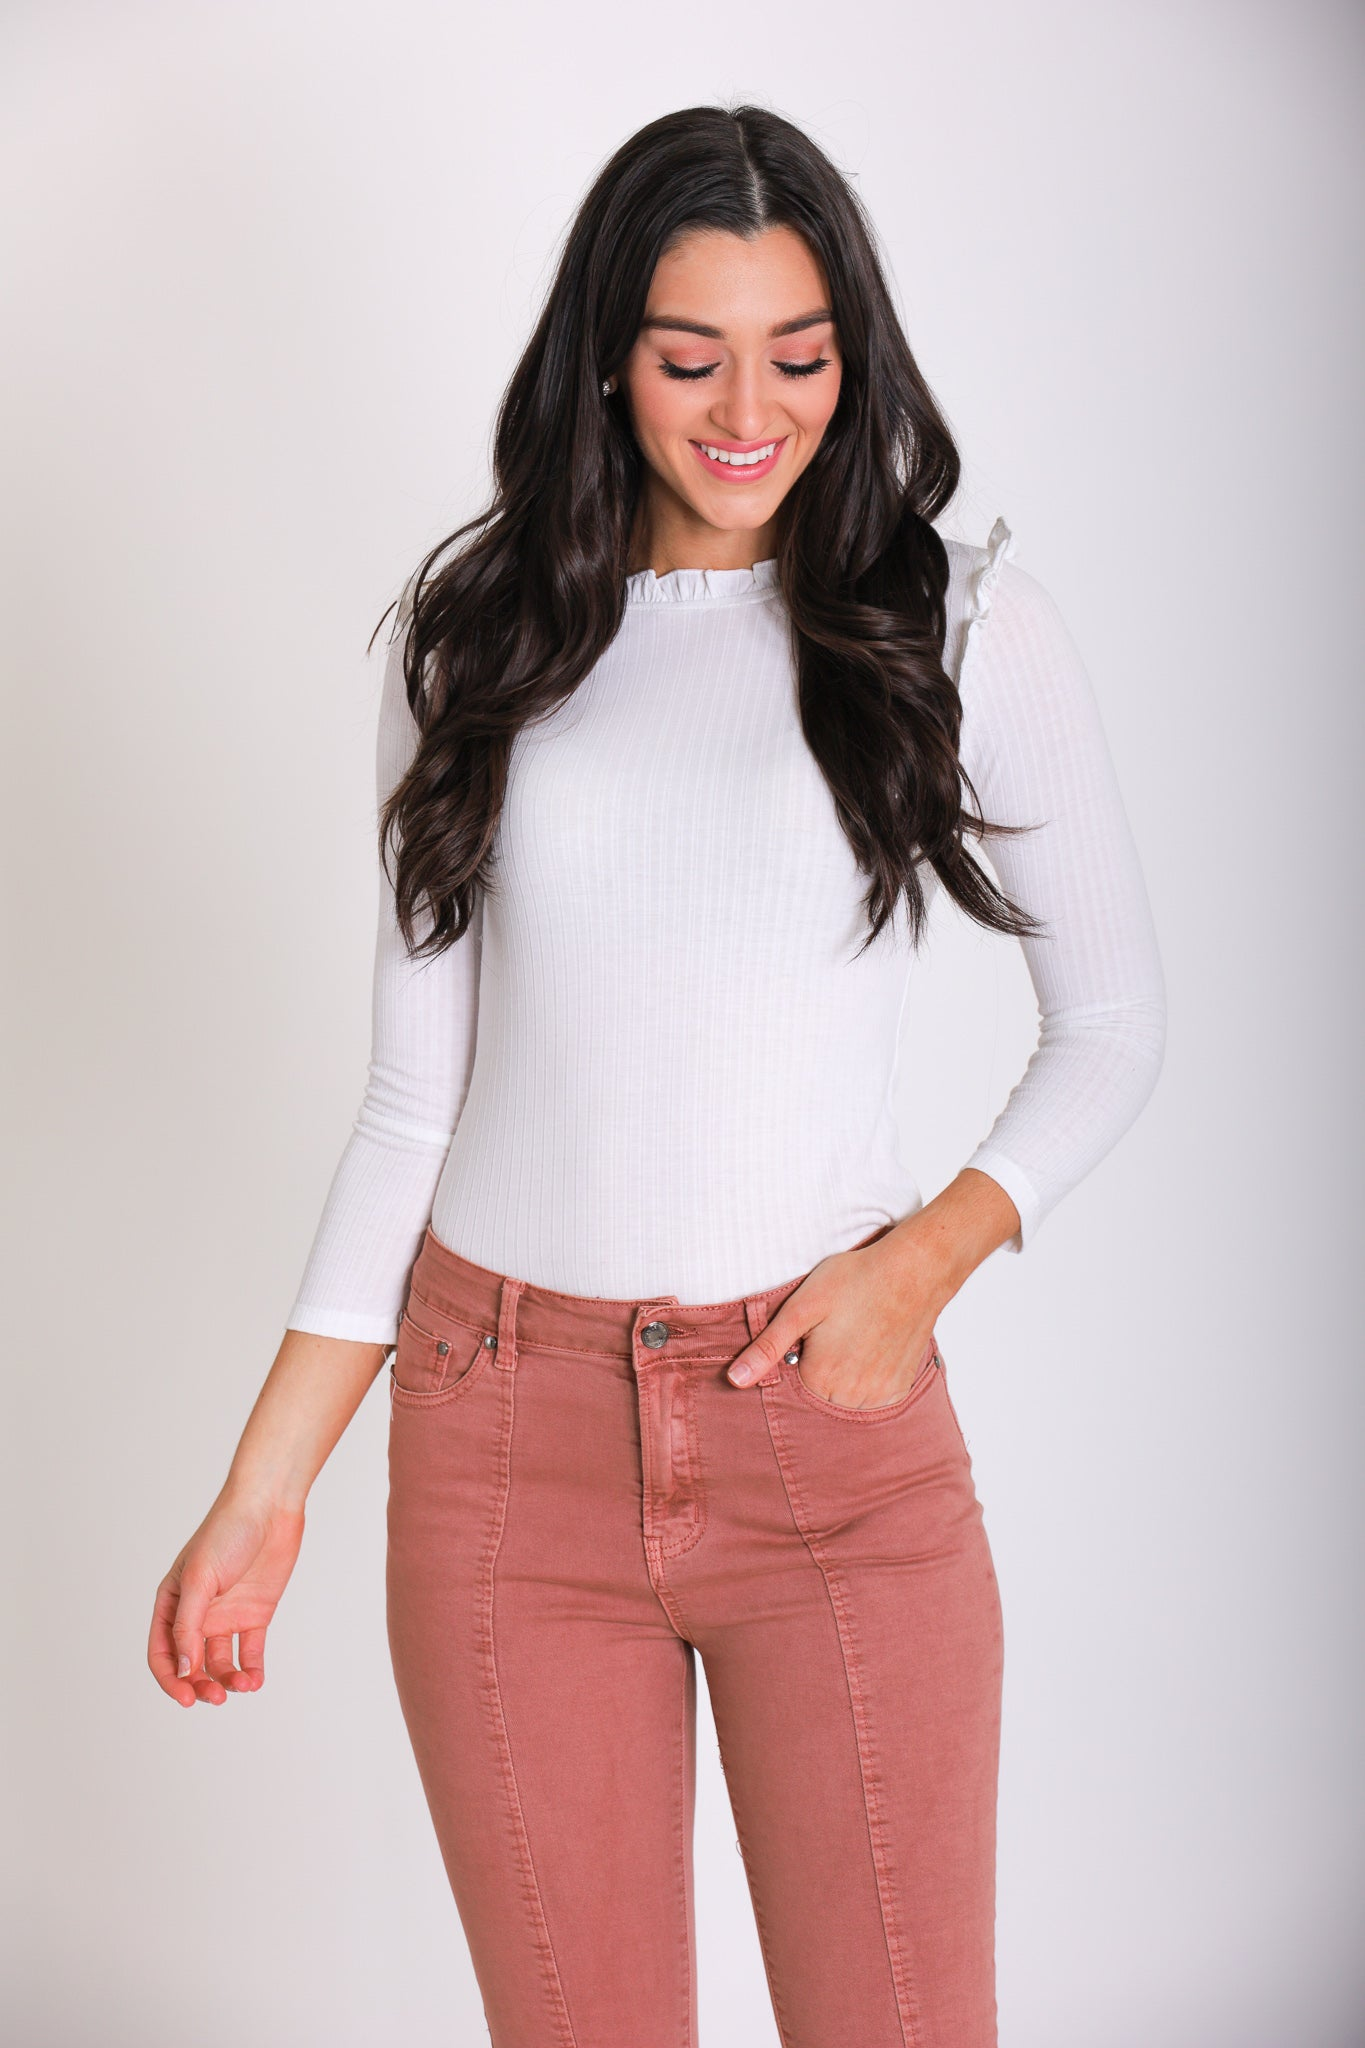 Ribbed Ruffle Mock Neck - White - Tops - Wight Elephant Boutique